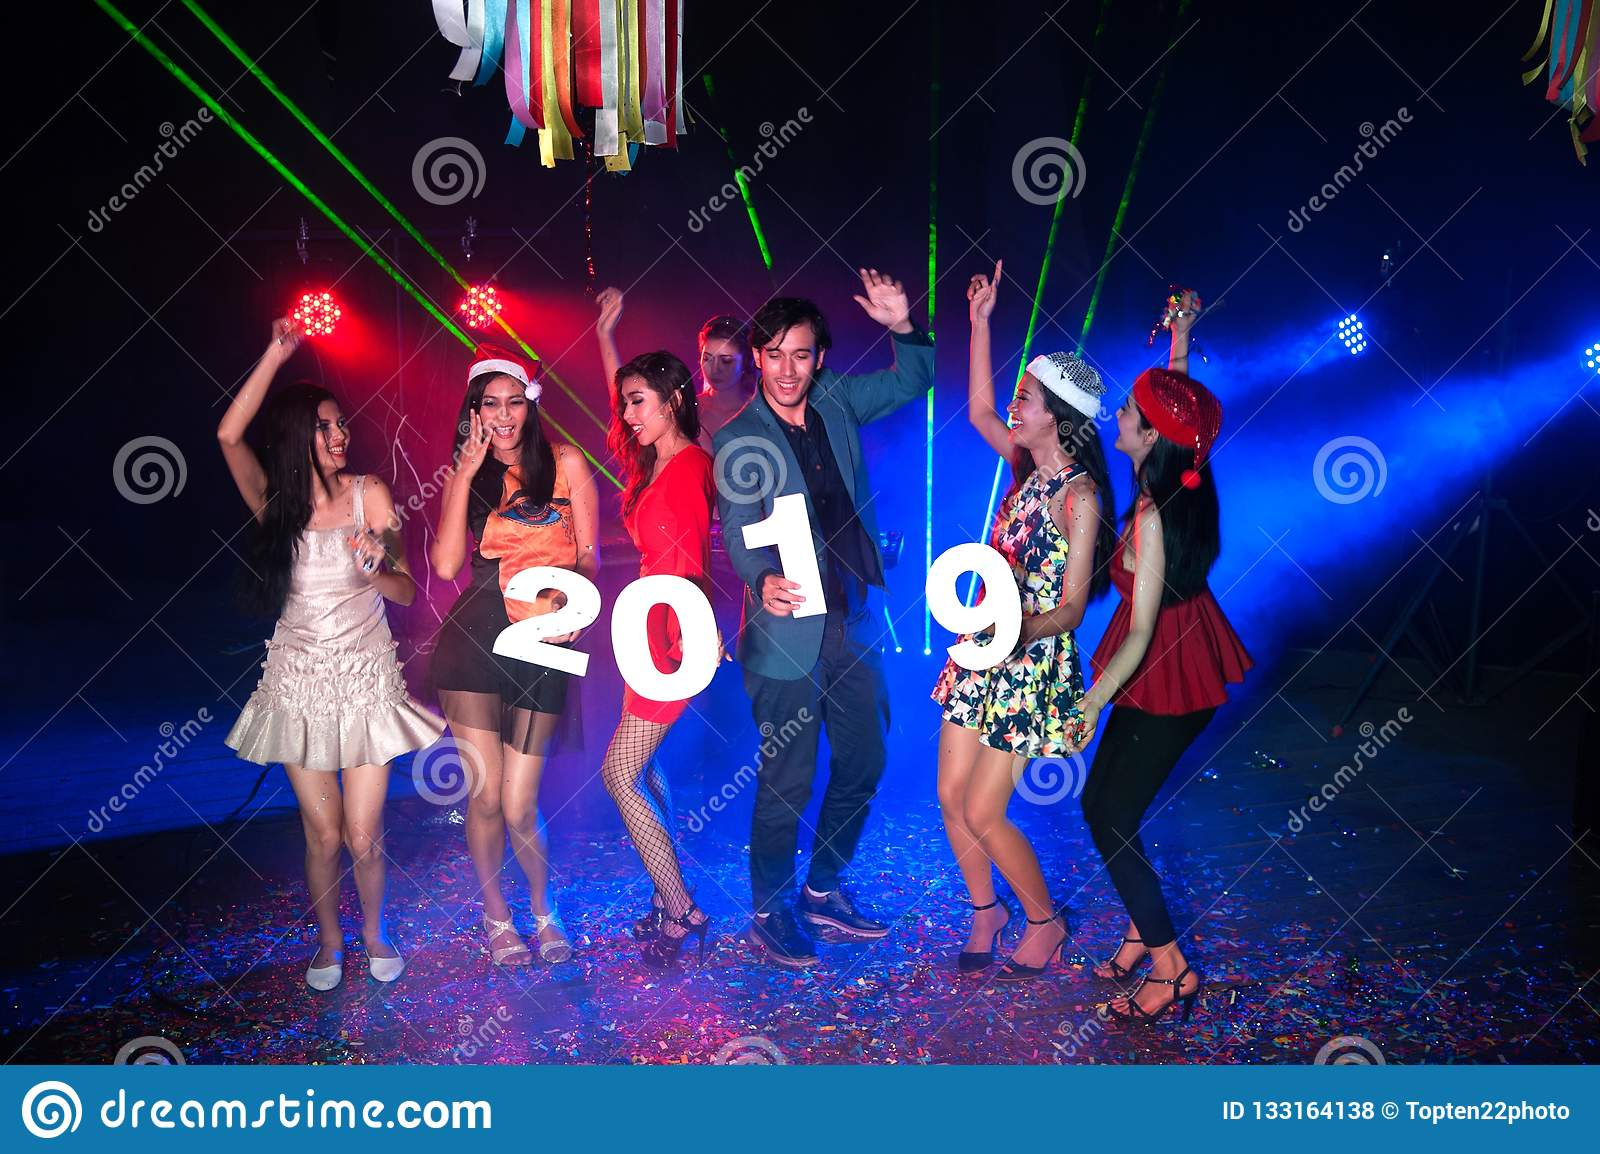 Group Of People Dancing At Night Club With Santa Hat Christmas Holidays.  Stock Photo - Image of friendship, dance: 133164138